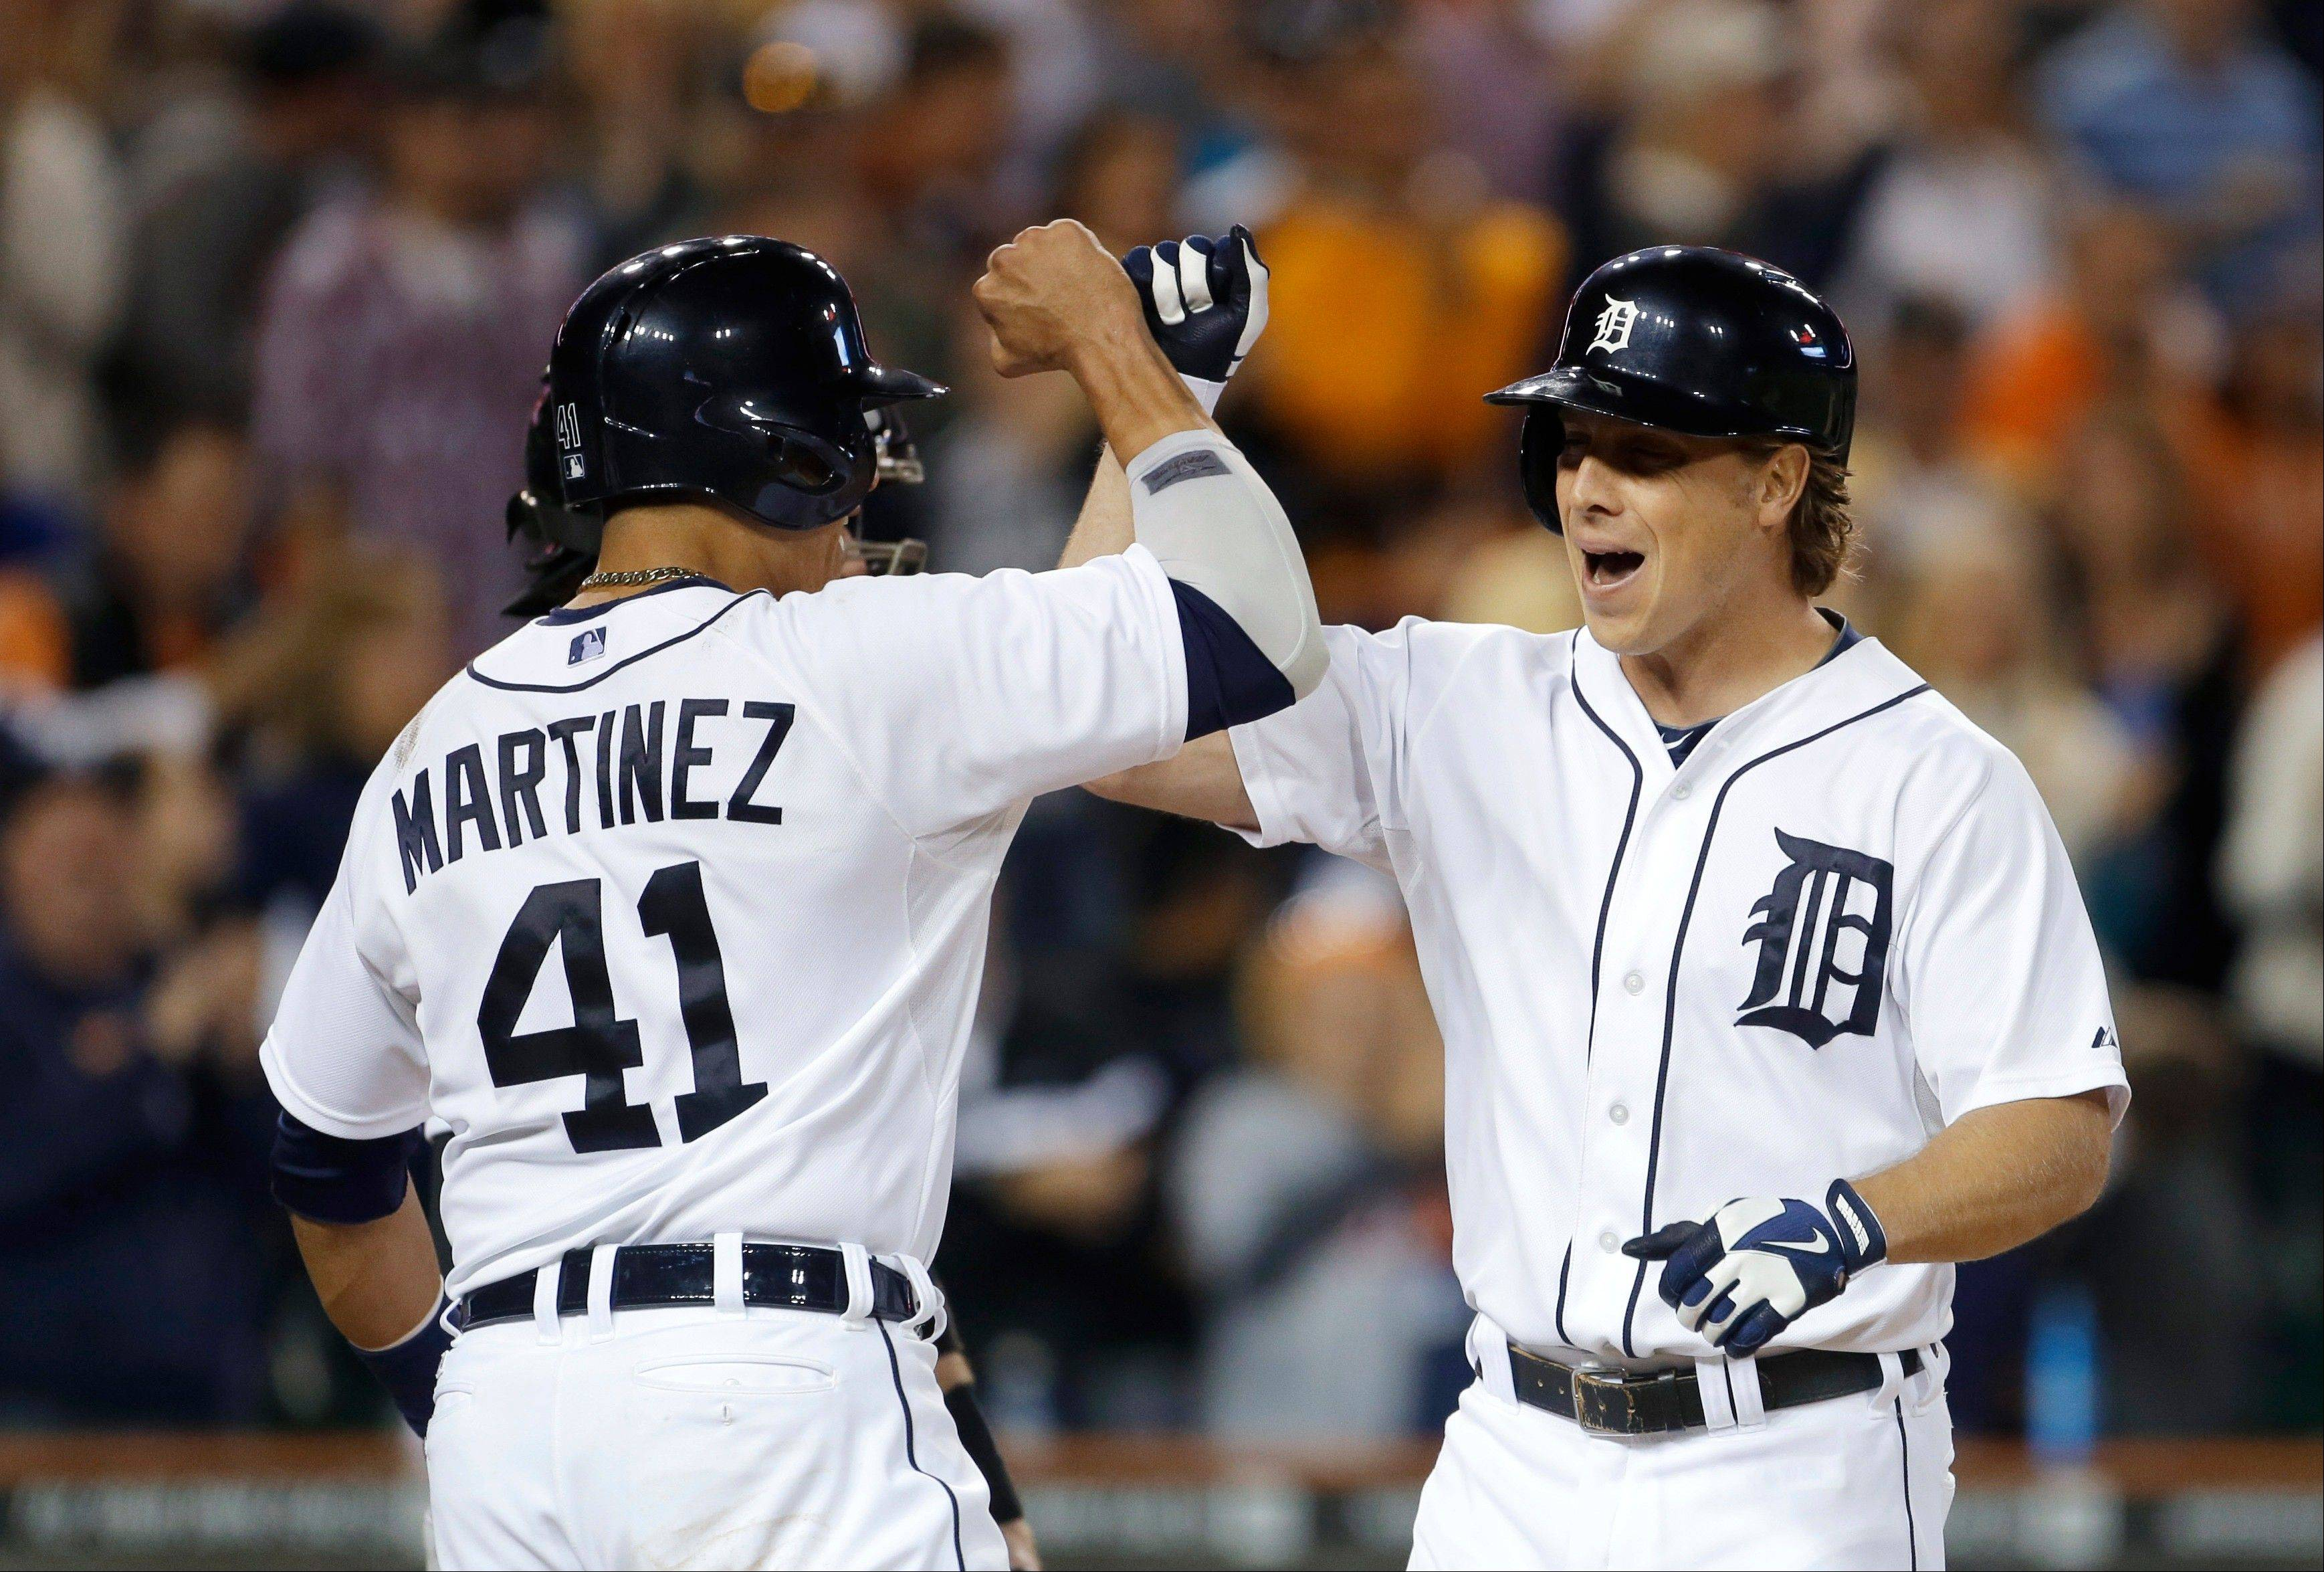 The Tigers' Andy Dirks, right, is congratulated for his three-run home run by Victor Martinez during the ninth inning Saturday night against the White Sox in Detroit.